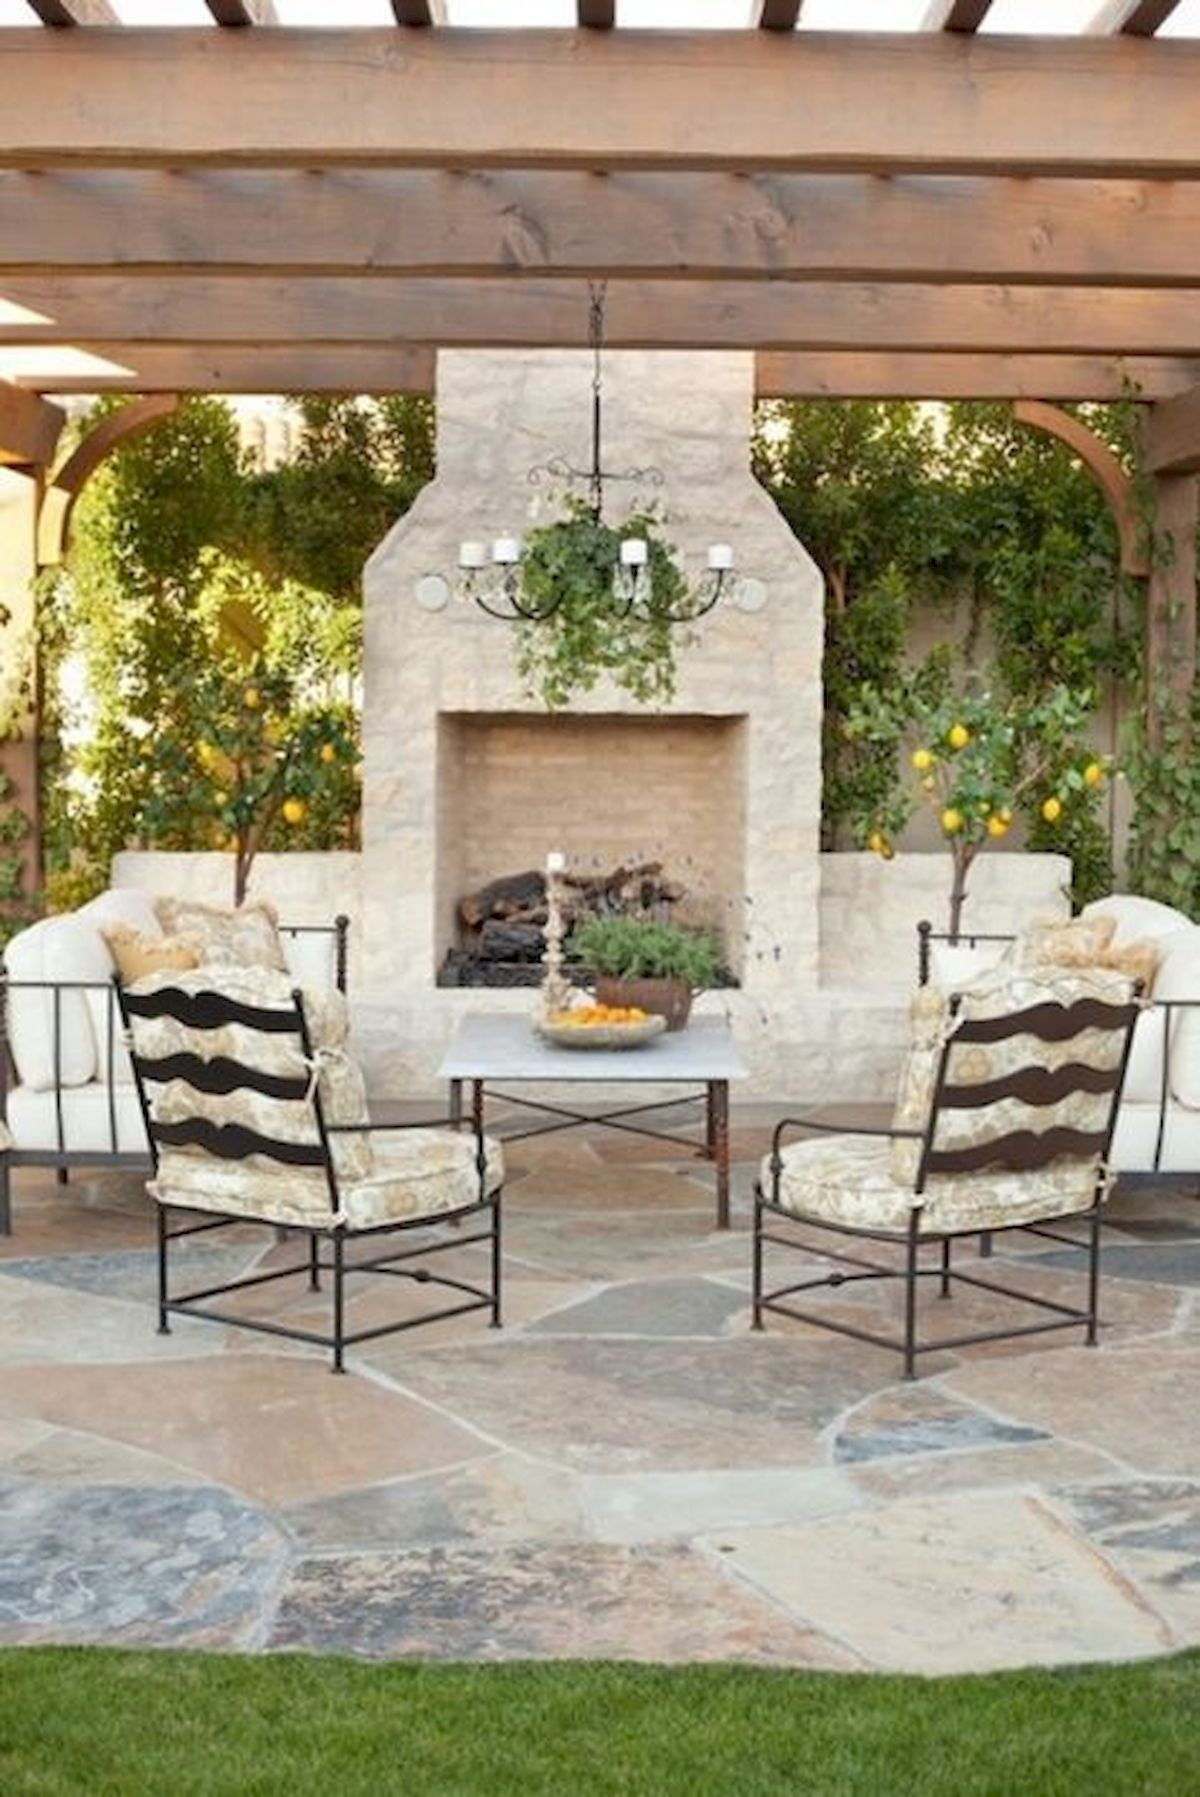 Pretty Patio Ideas For Ideal Life Https://carrebianhome.com/pretty